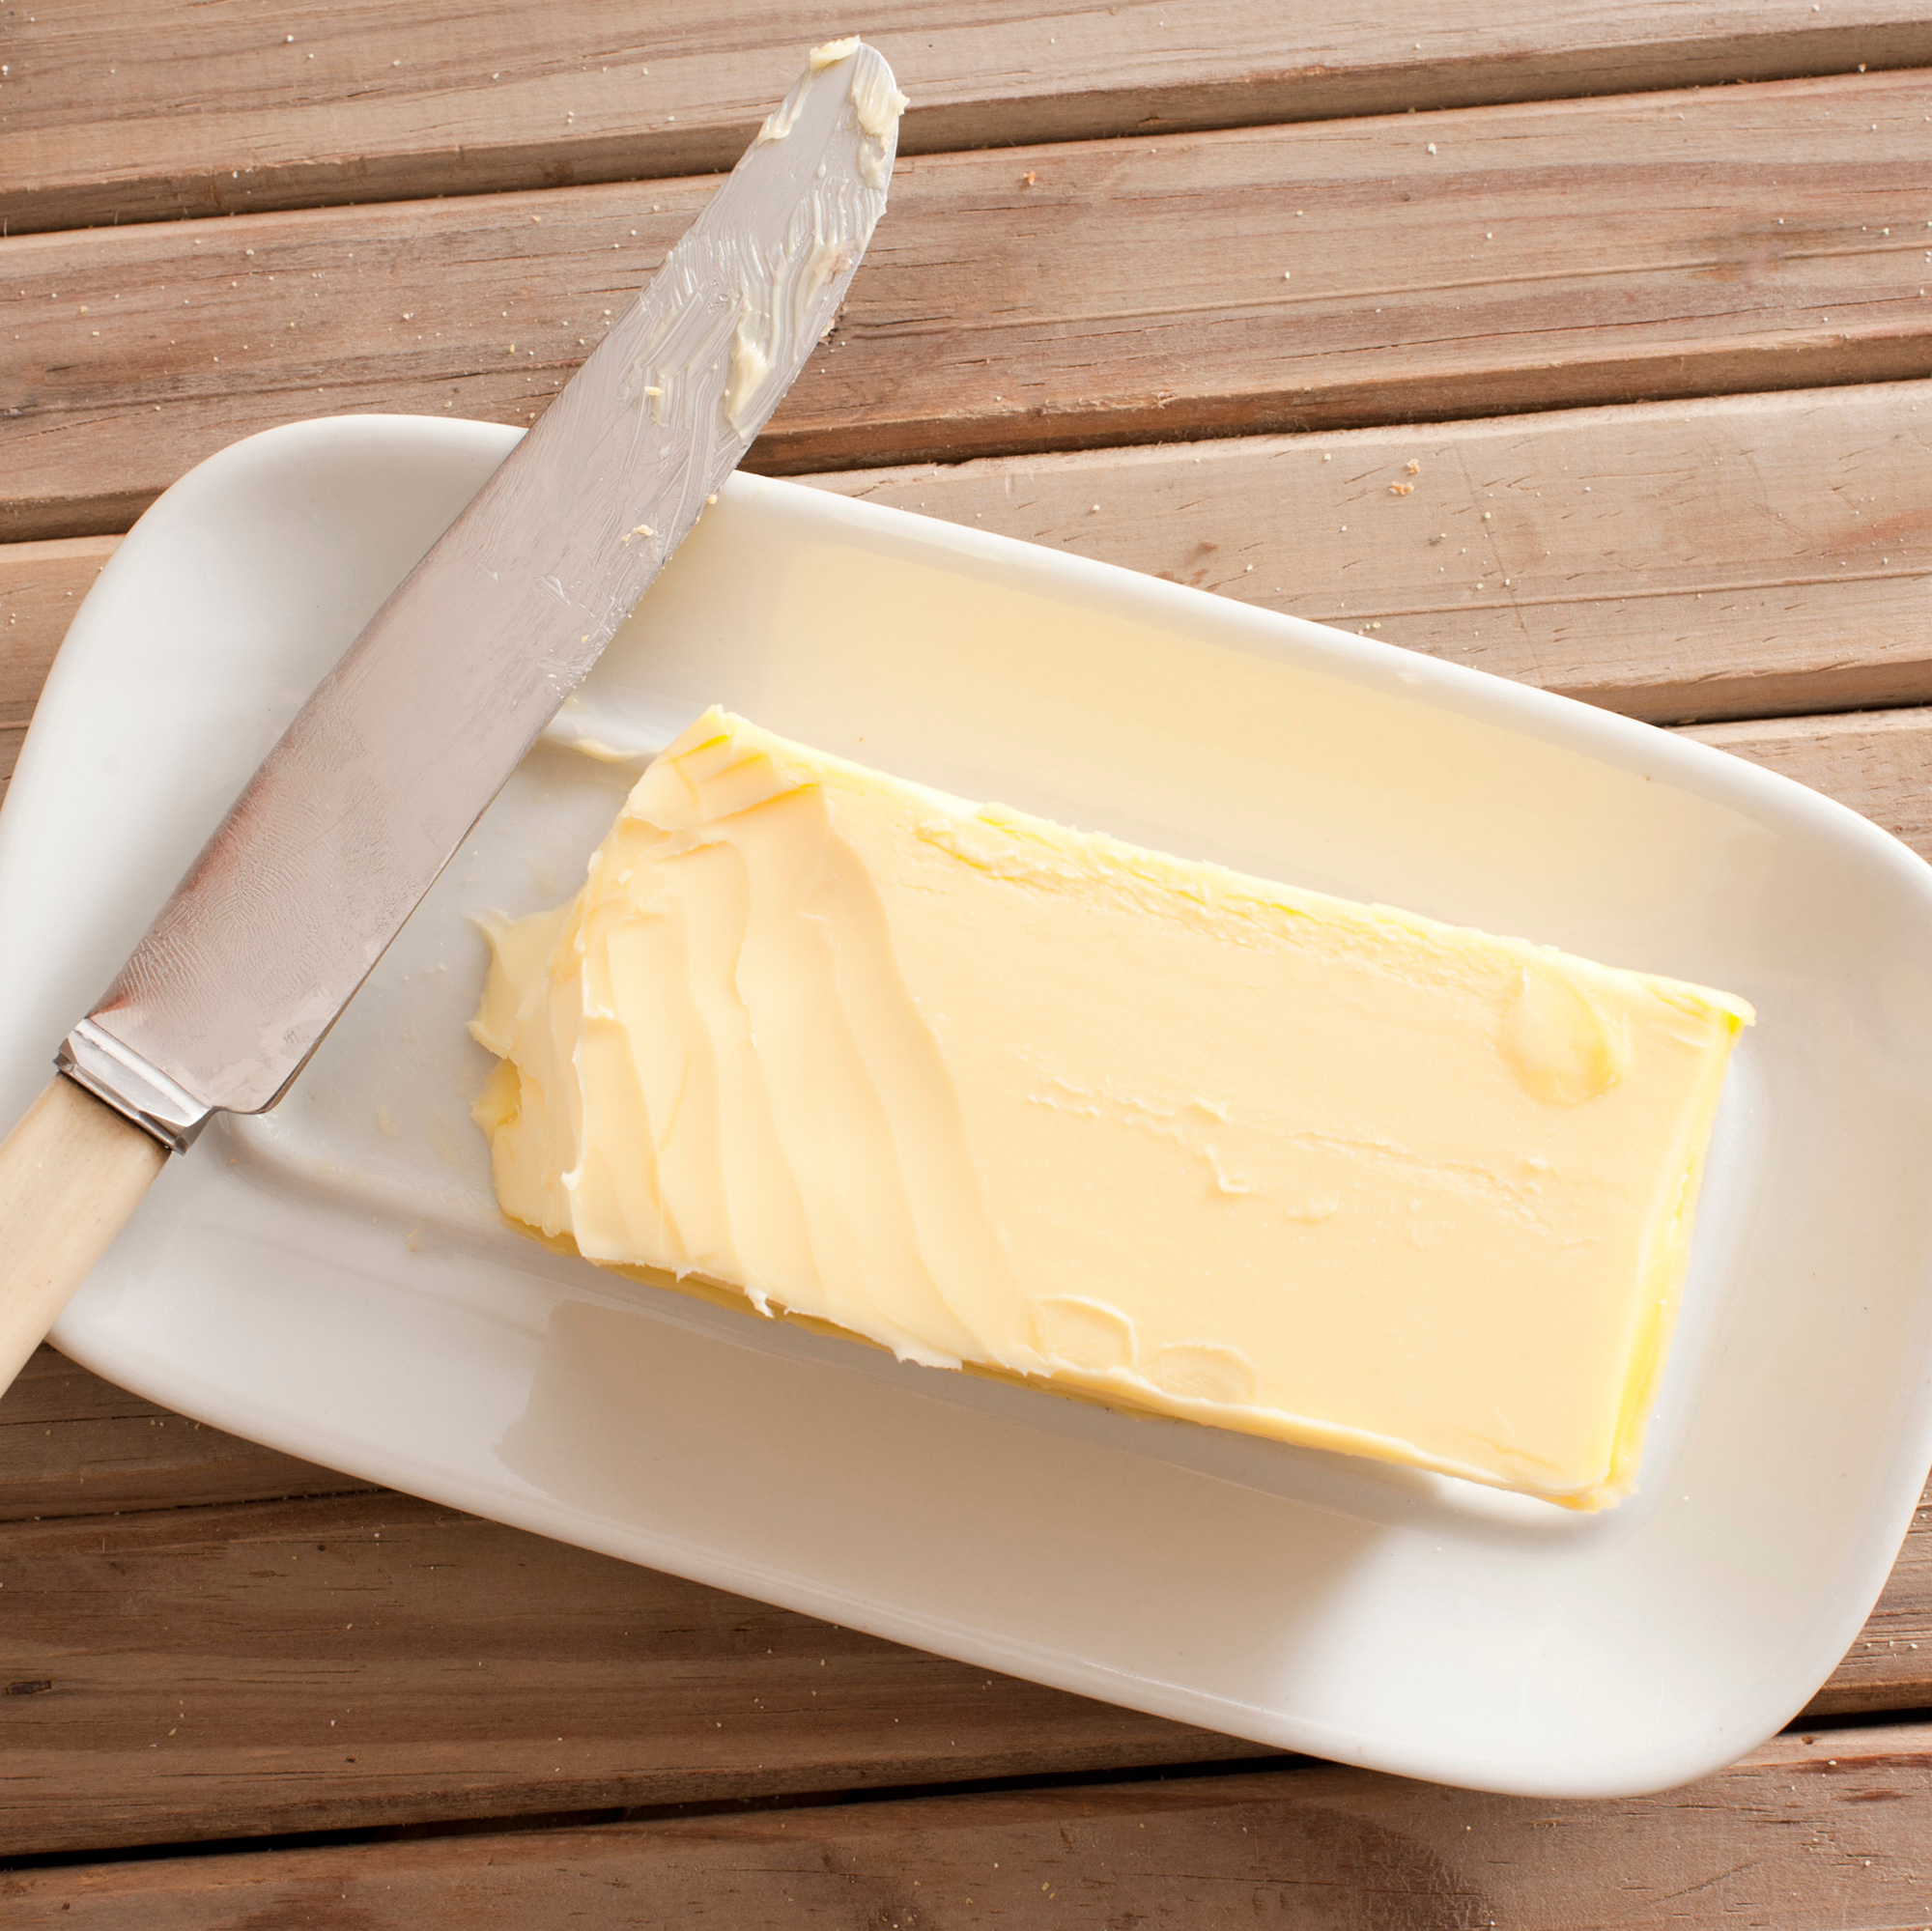 a dish of butter with a knife